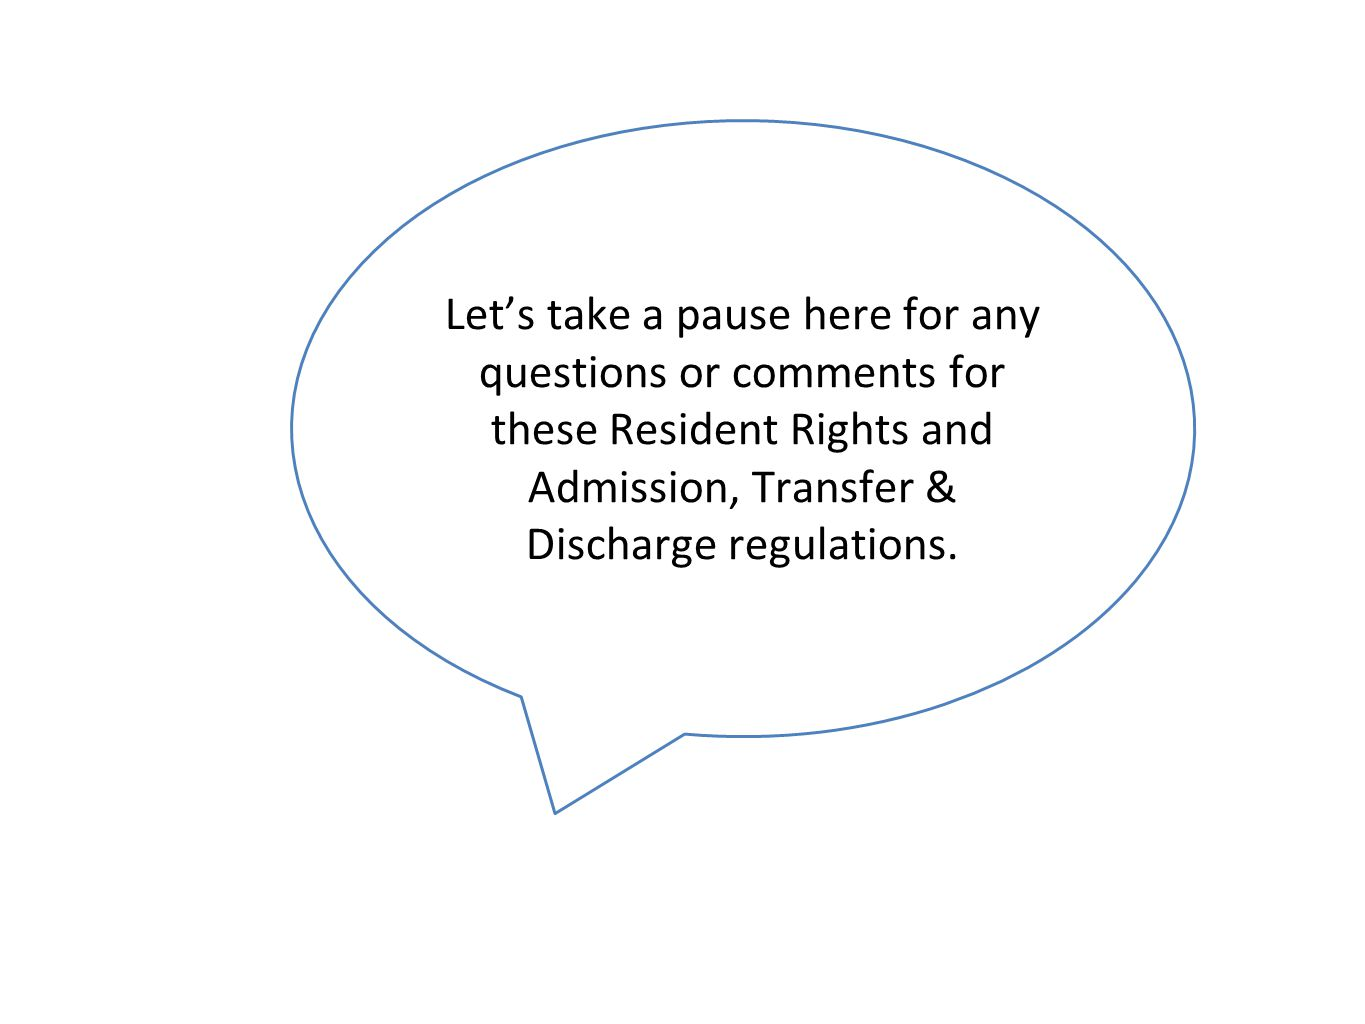 Let's take a pause here for any questions or comments for these Resident Rights and Admission, Transfer & Discharge regulations.